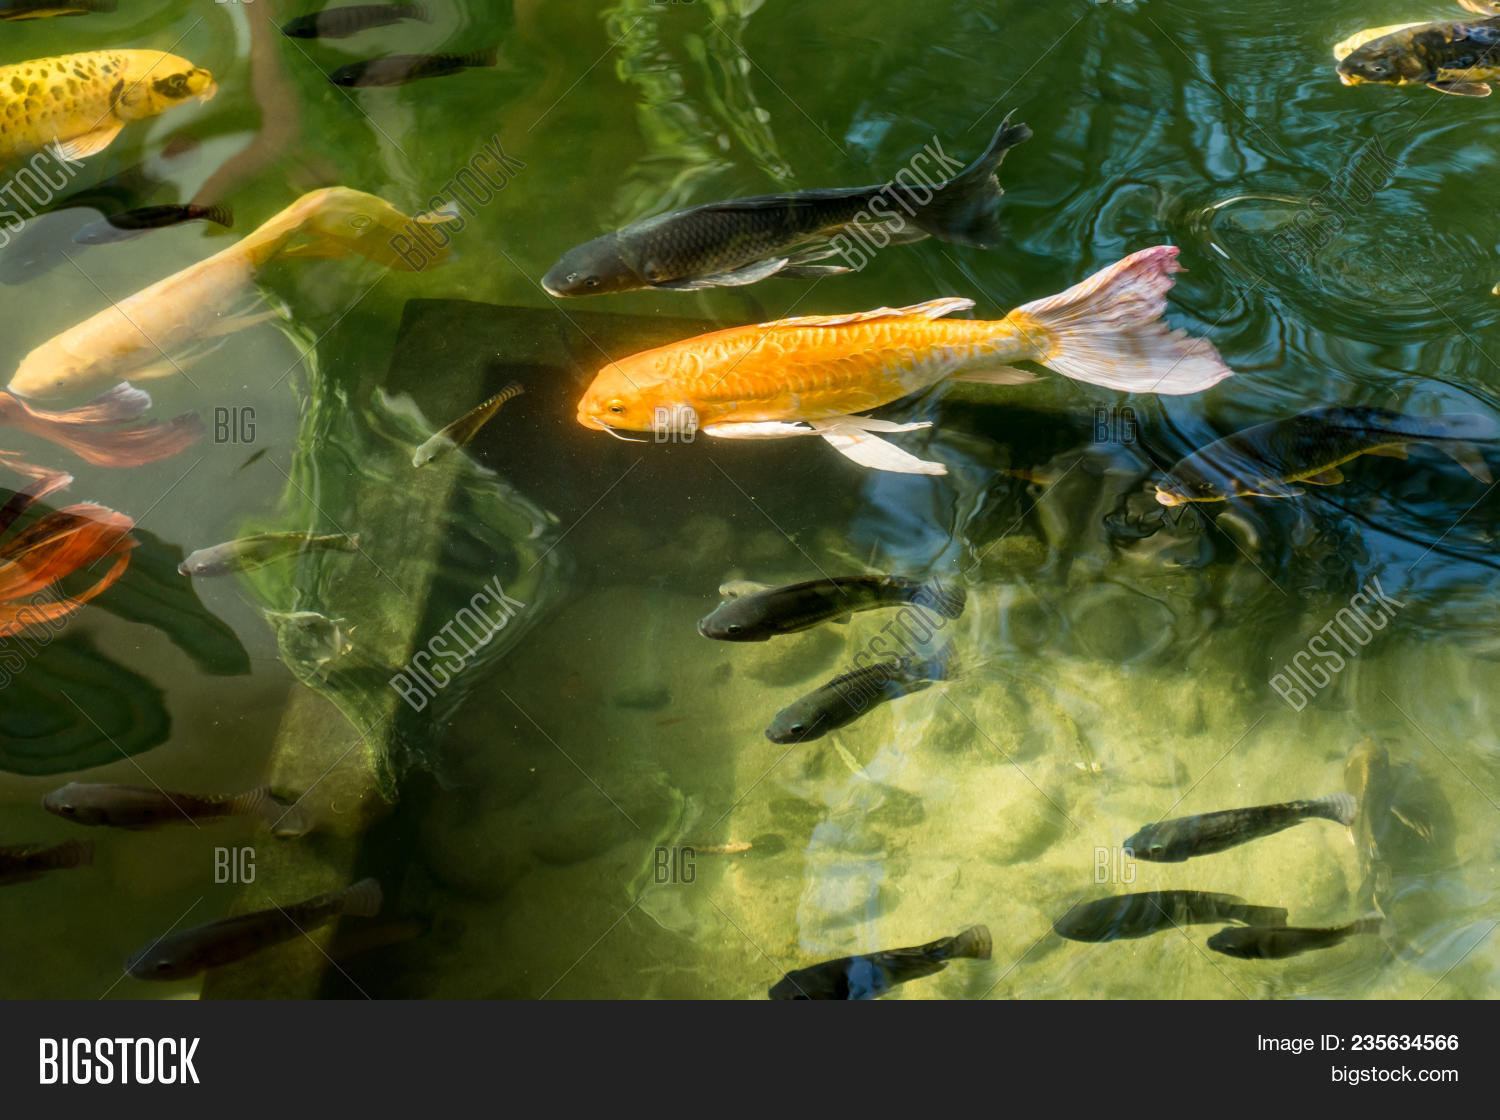 Colorful Fancy Carp Image & Photo (Free Trial) | Bigstock